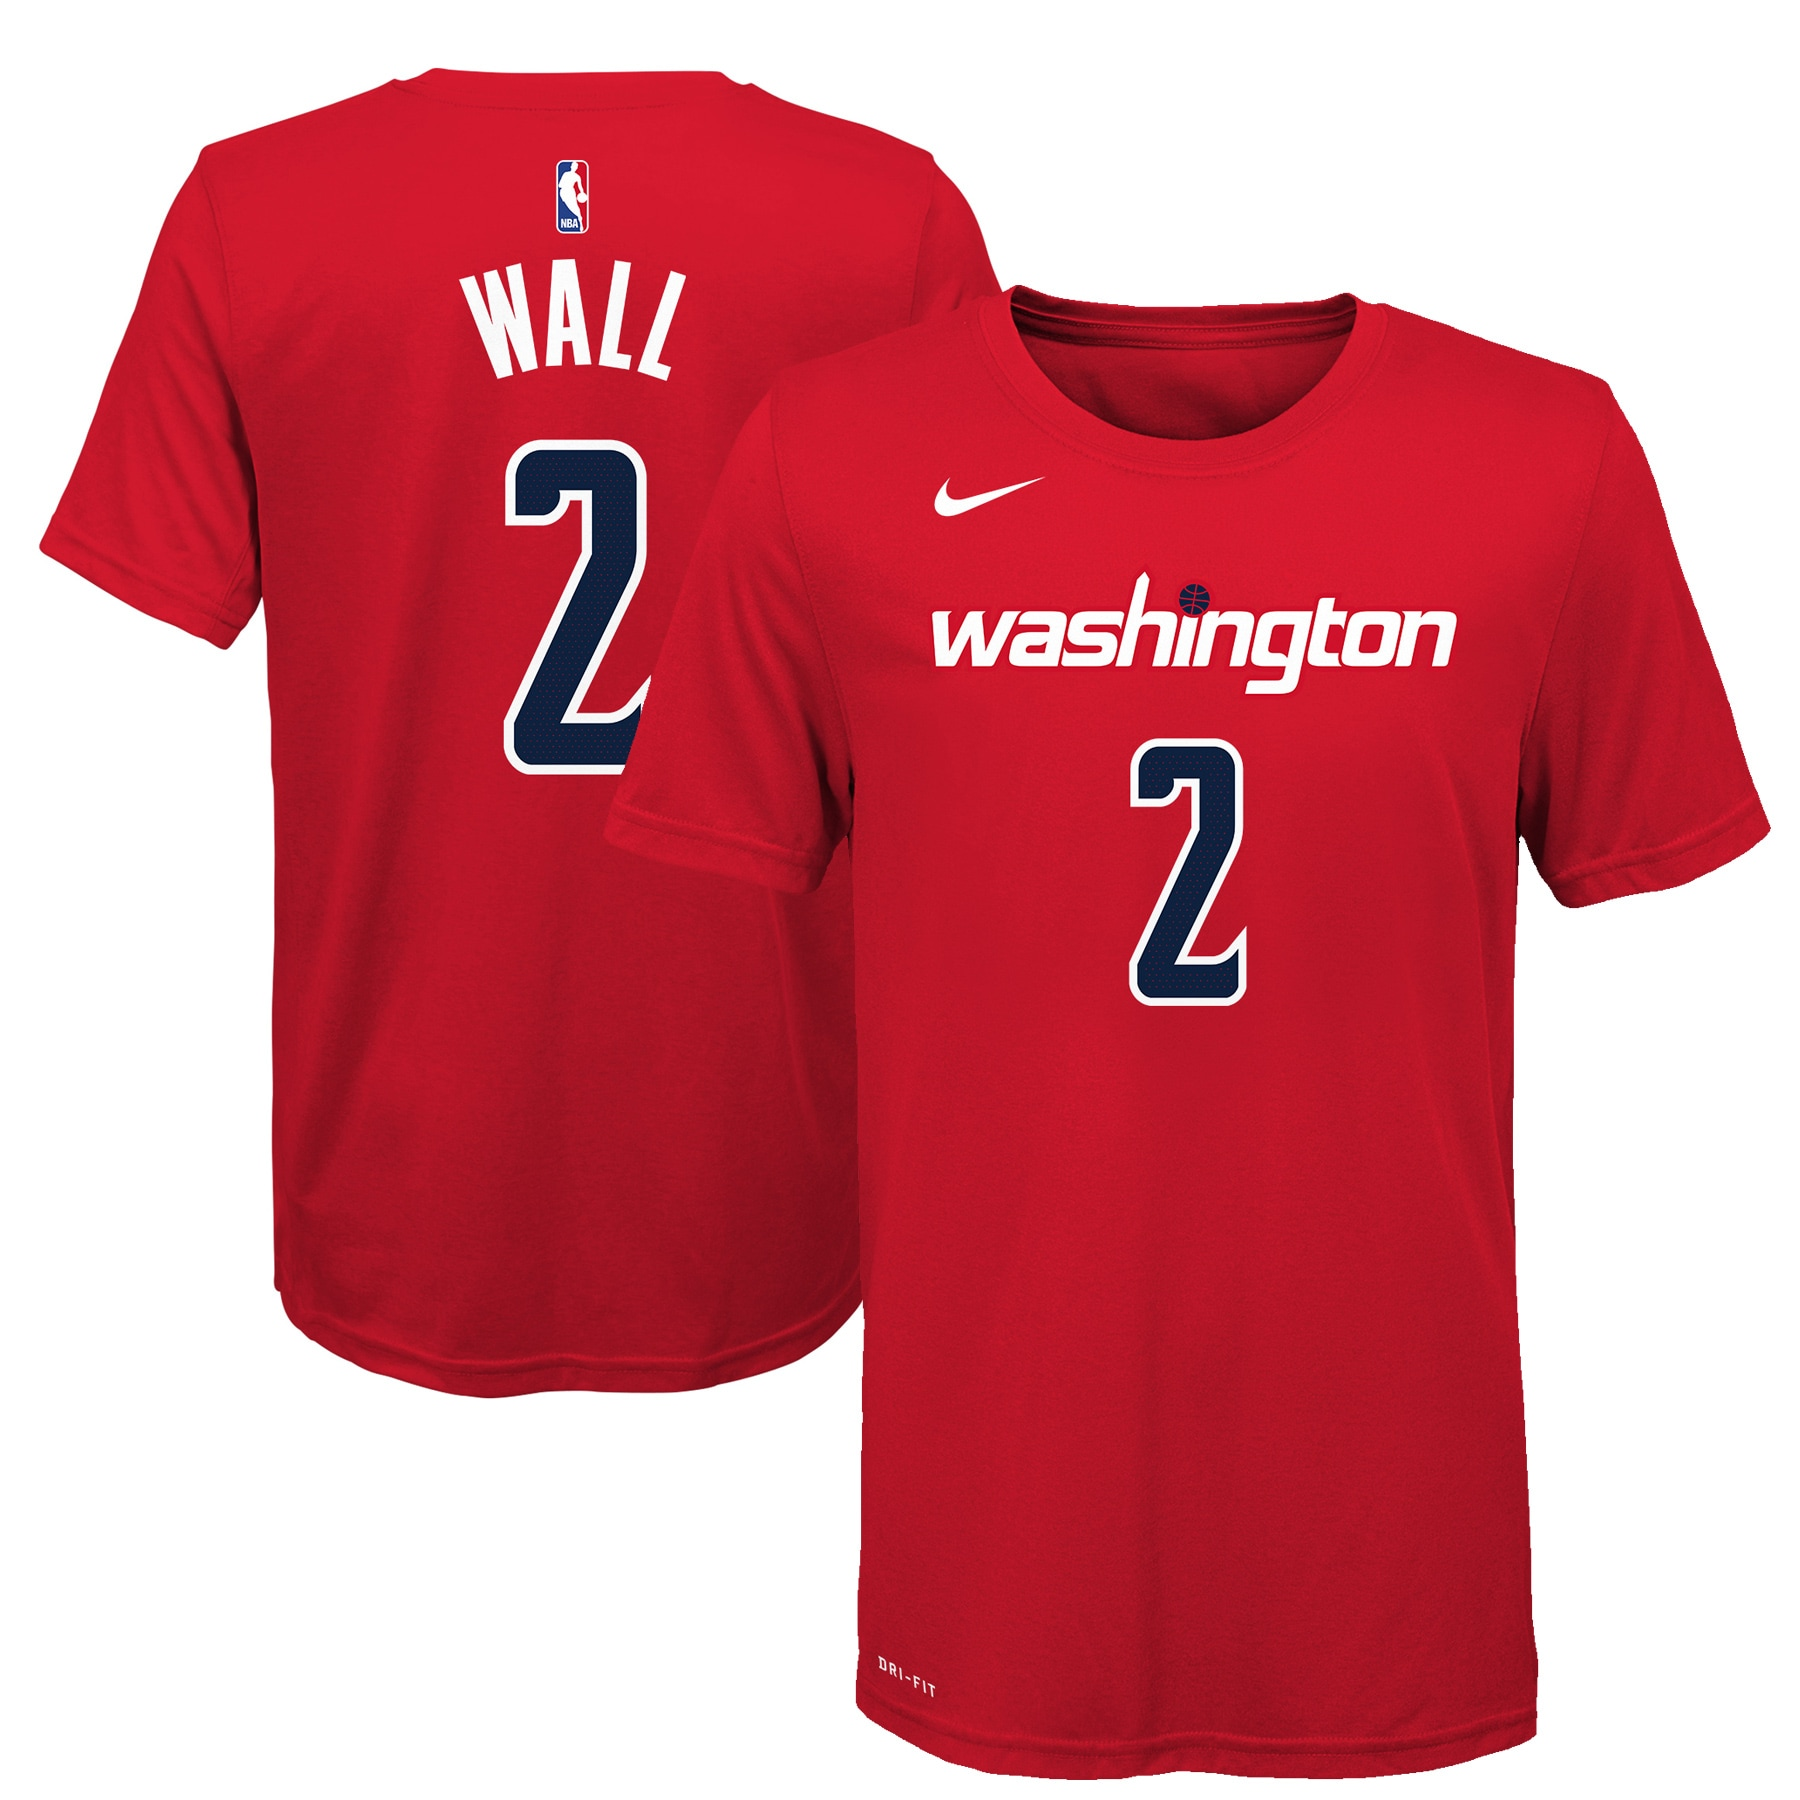 John Wall Washington Wizards Nike Youth Name & Number T-Shirt - Red